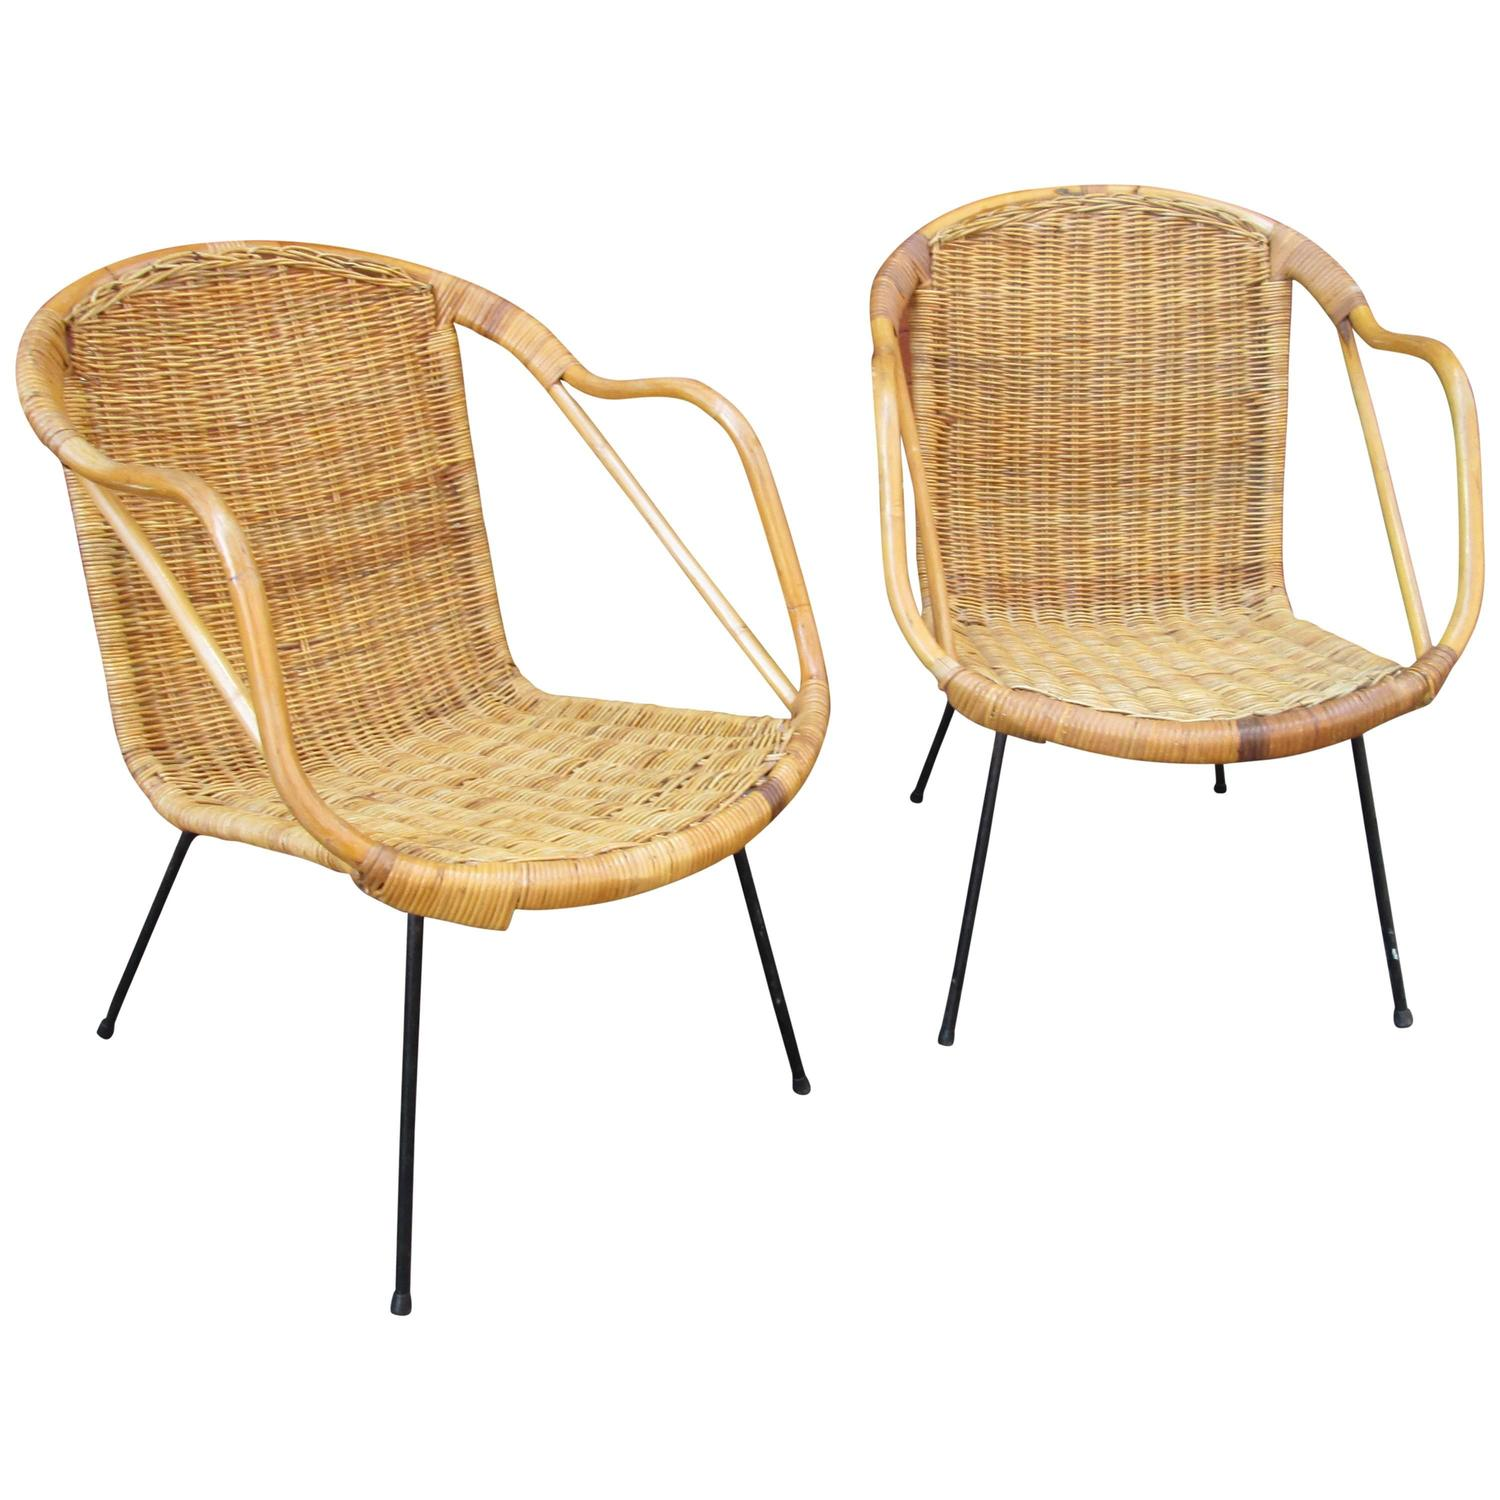 Pair Of Modern Wicker And Wrought Iron Chairs At 1stdibs